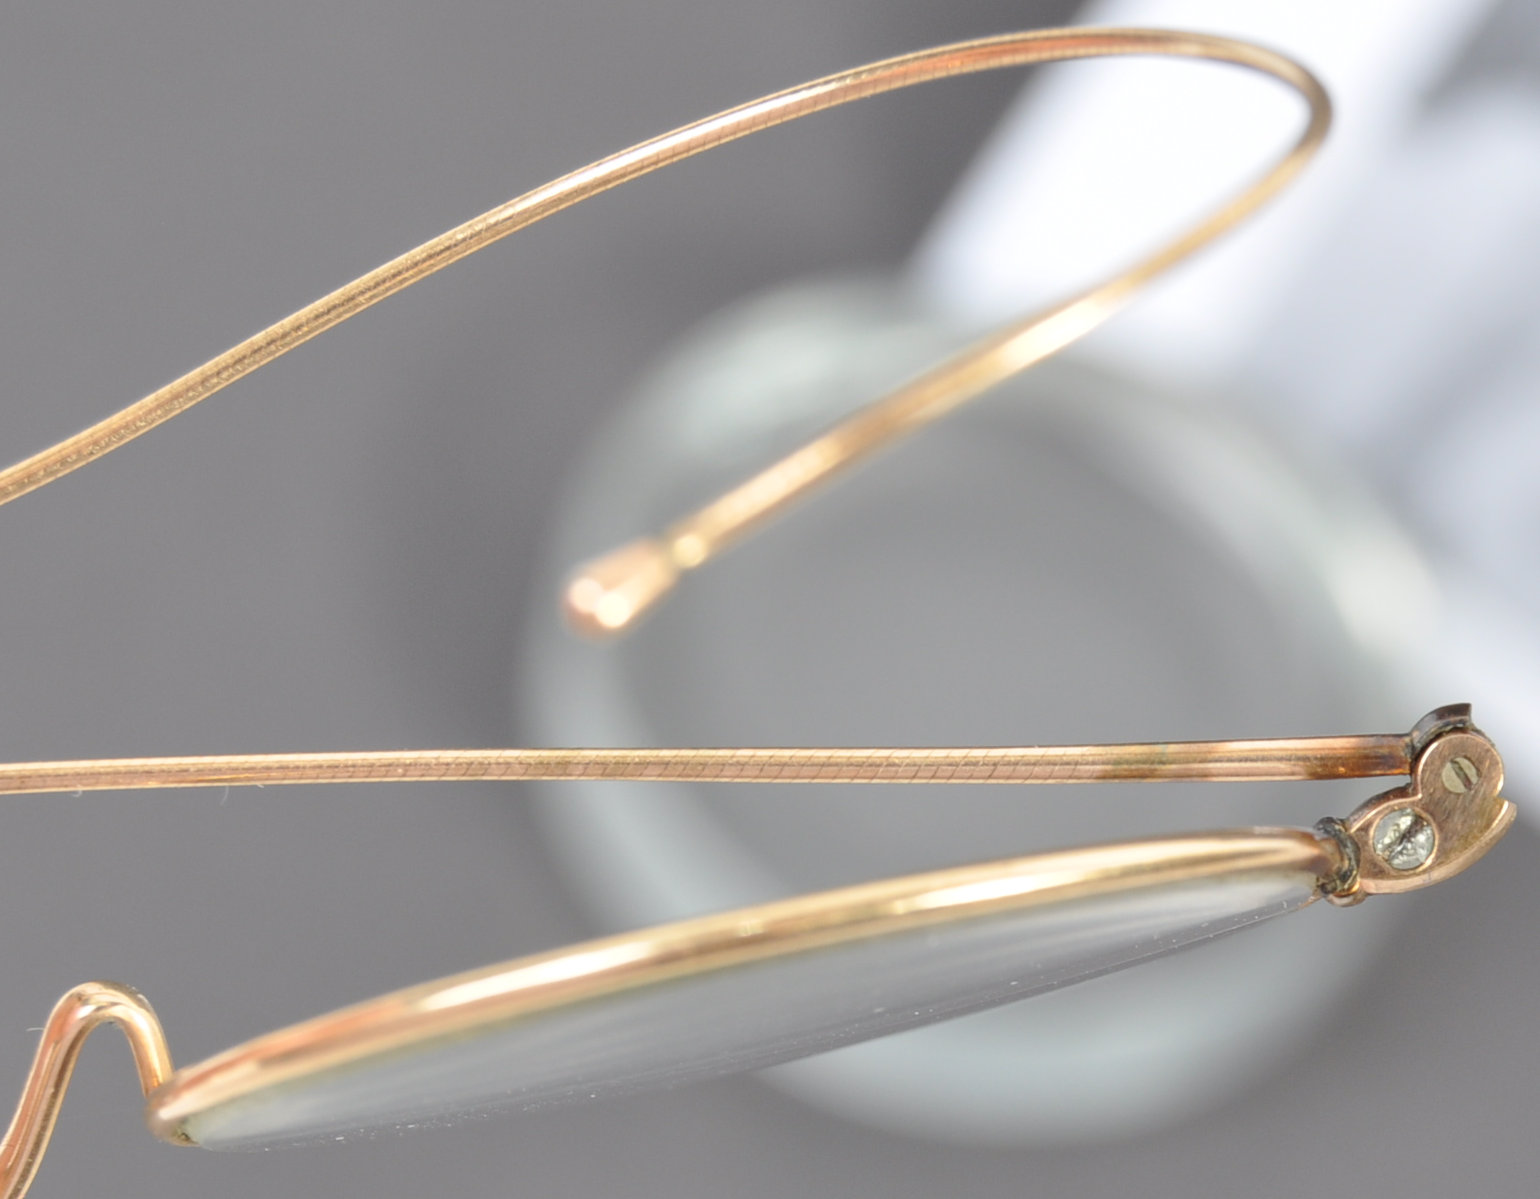 PAIR OF MATHATMA GANDHI'S PERSONAL SPECTACLES - Image 4 of 7